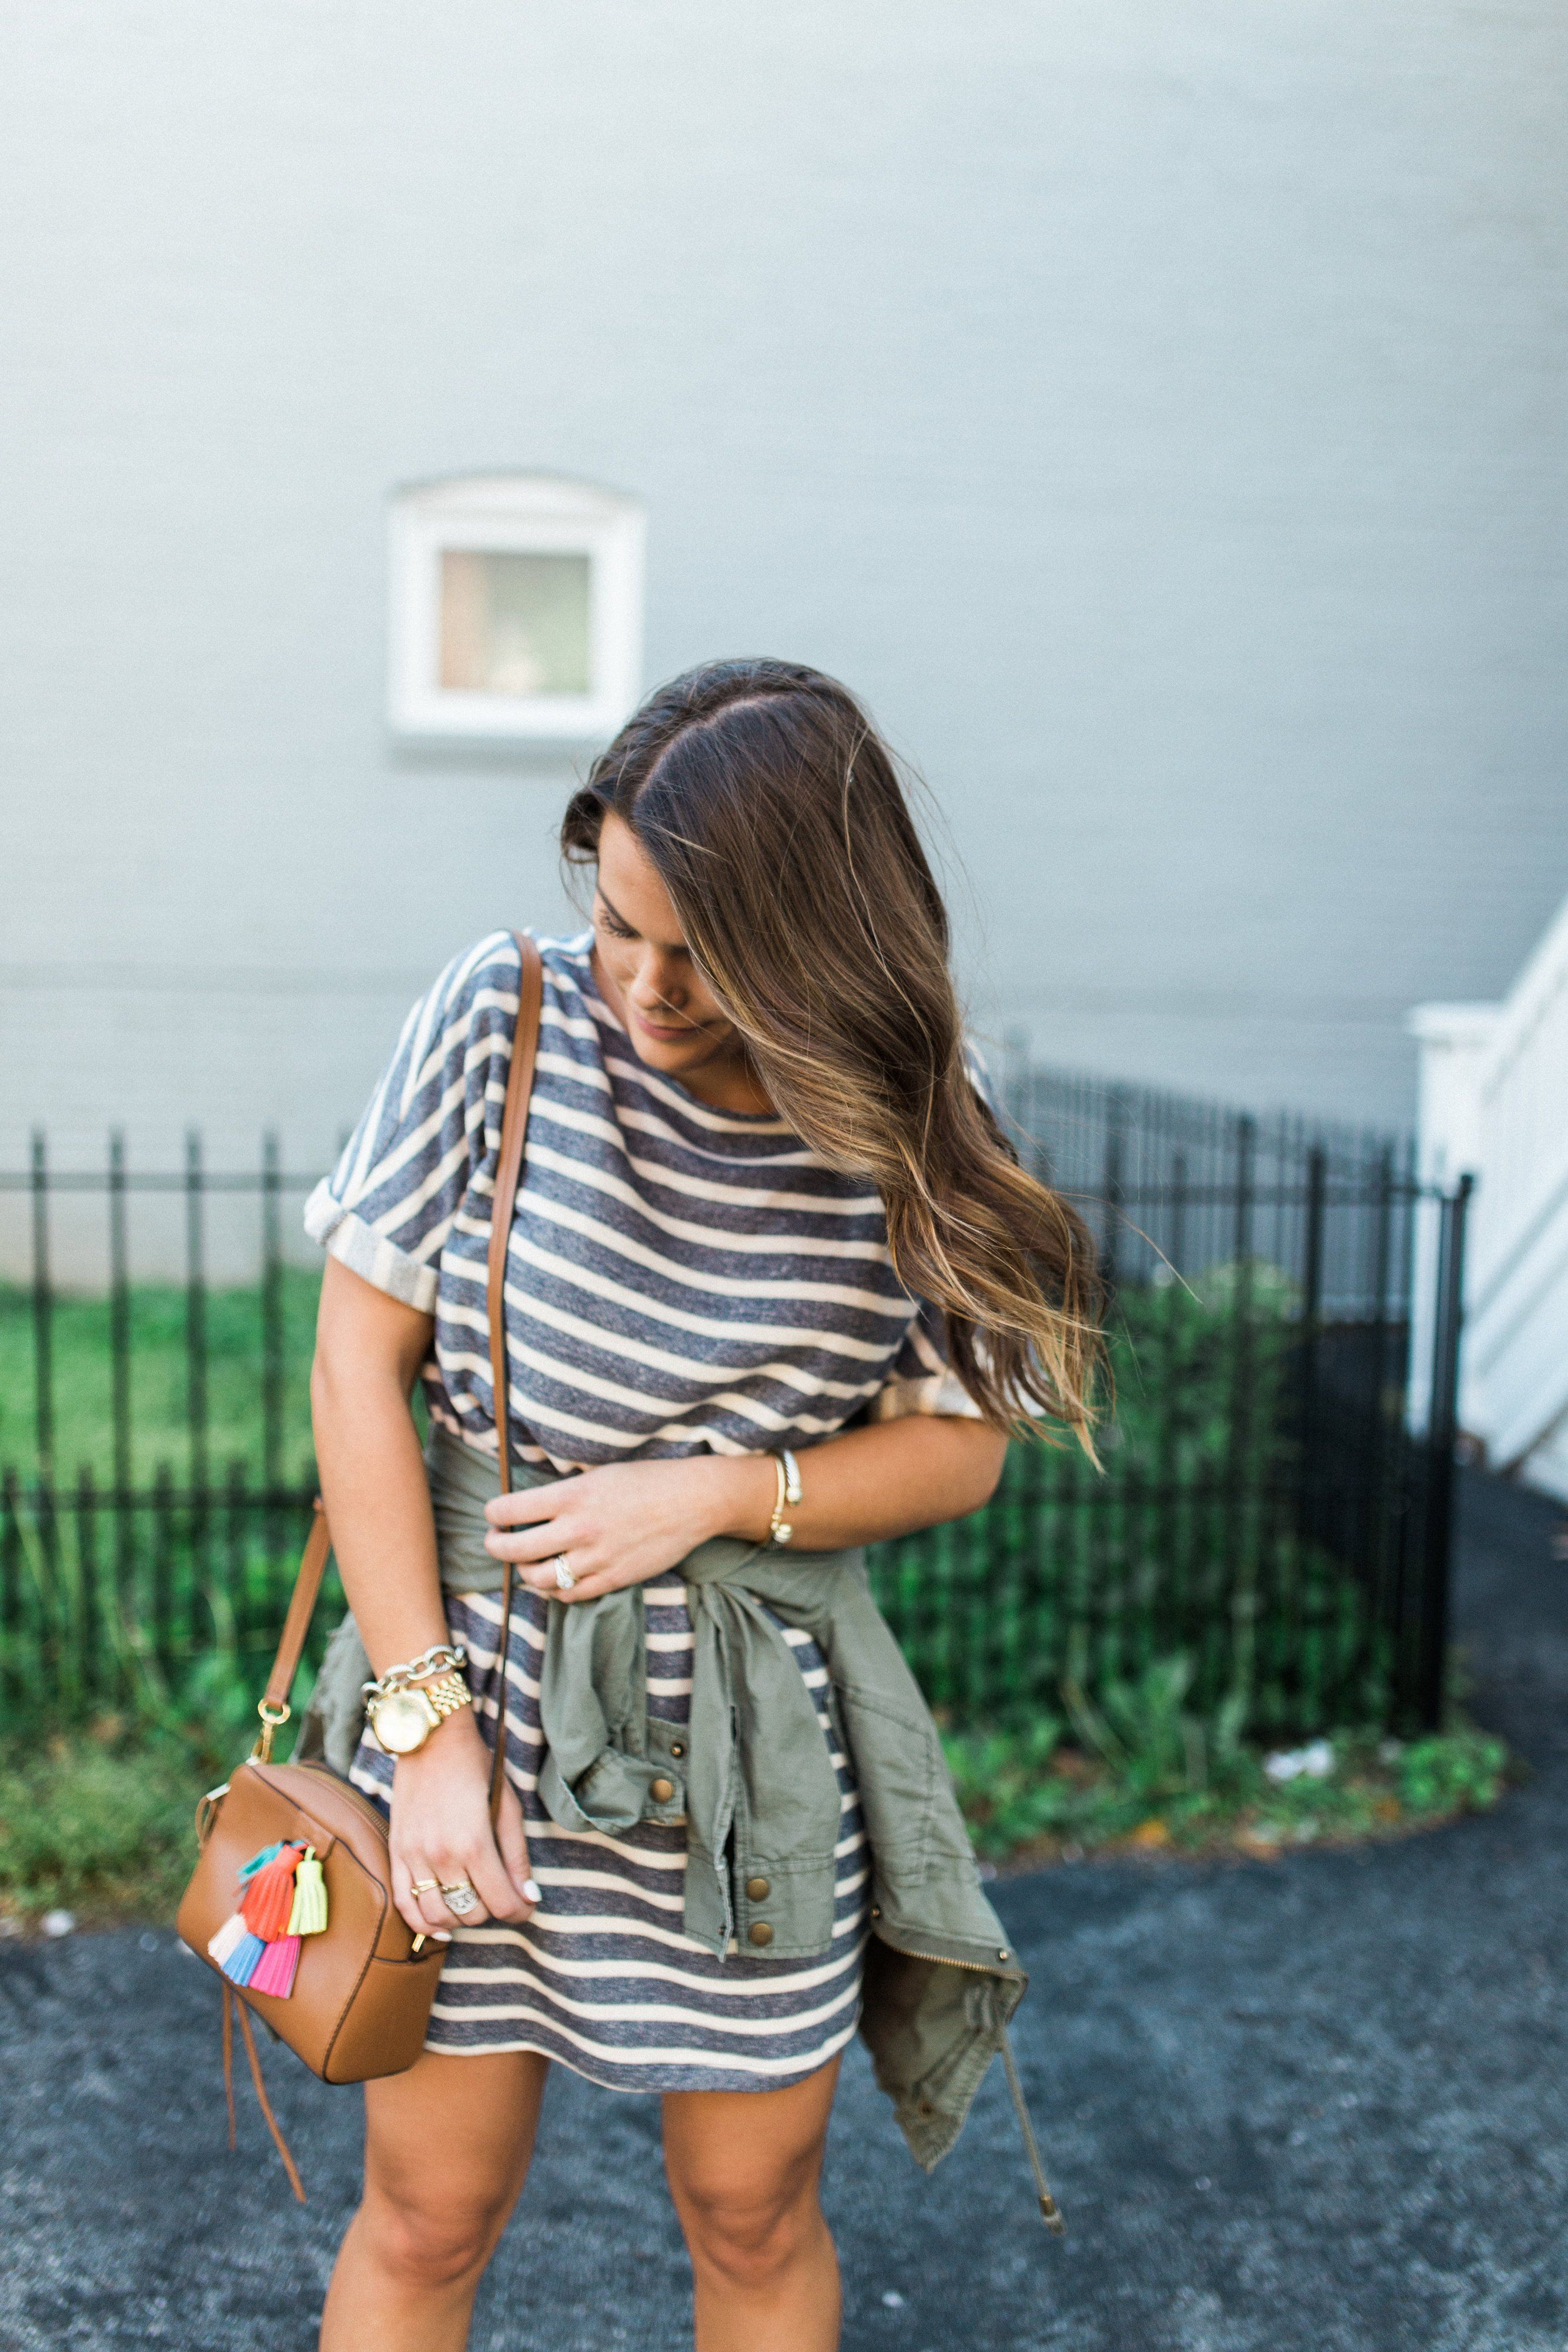 Green t shirt dress outfit  stripes u tassels  Utility jacket Spring style and Rebecca minkoff